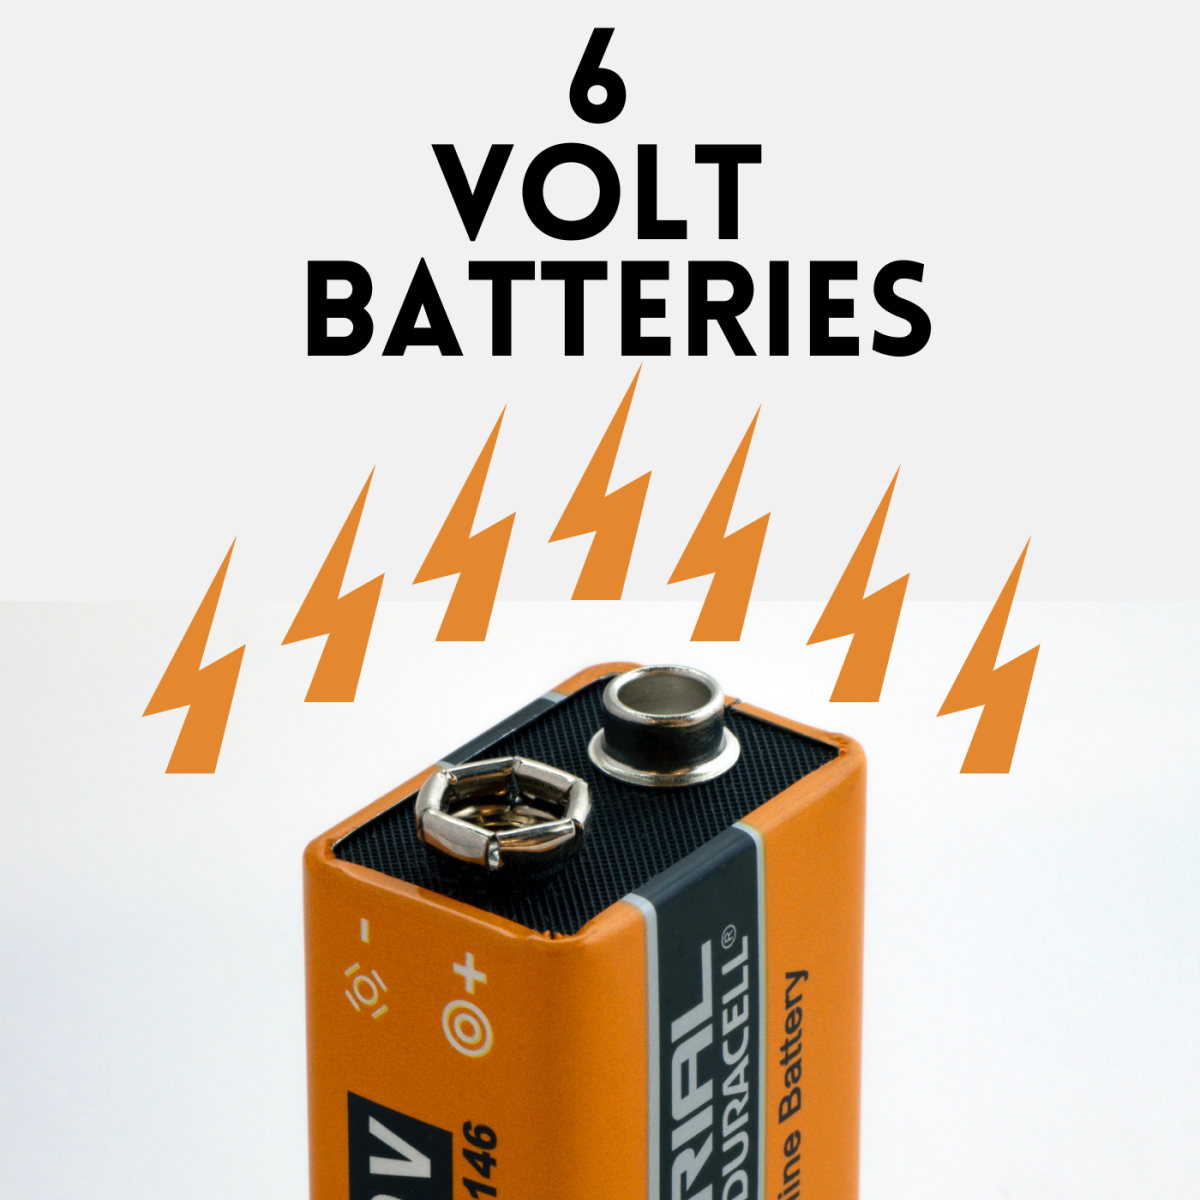 How many 6 volt batteries do you need and other answers about charging, duration, and more.